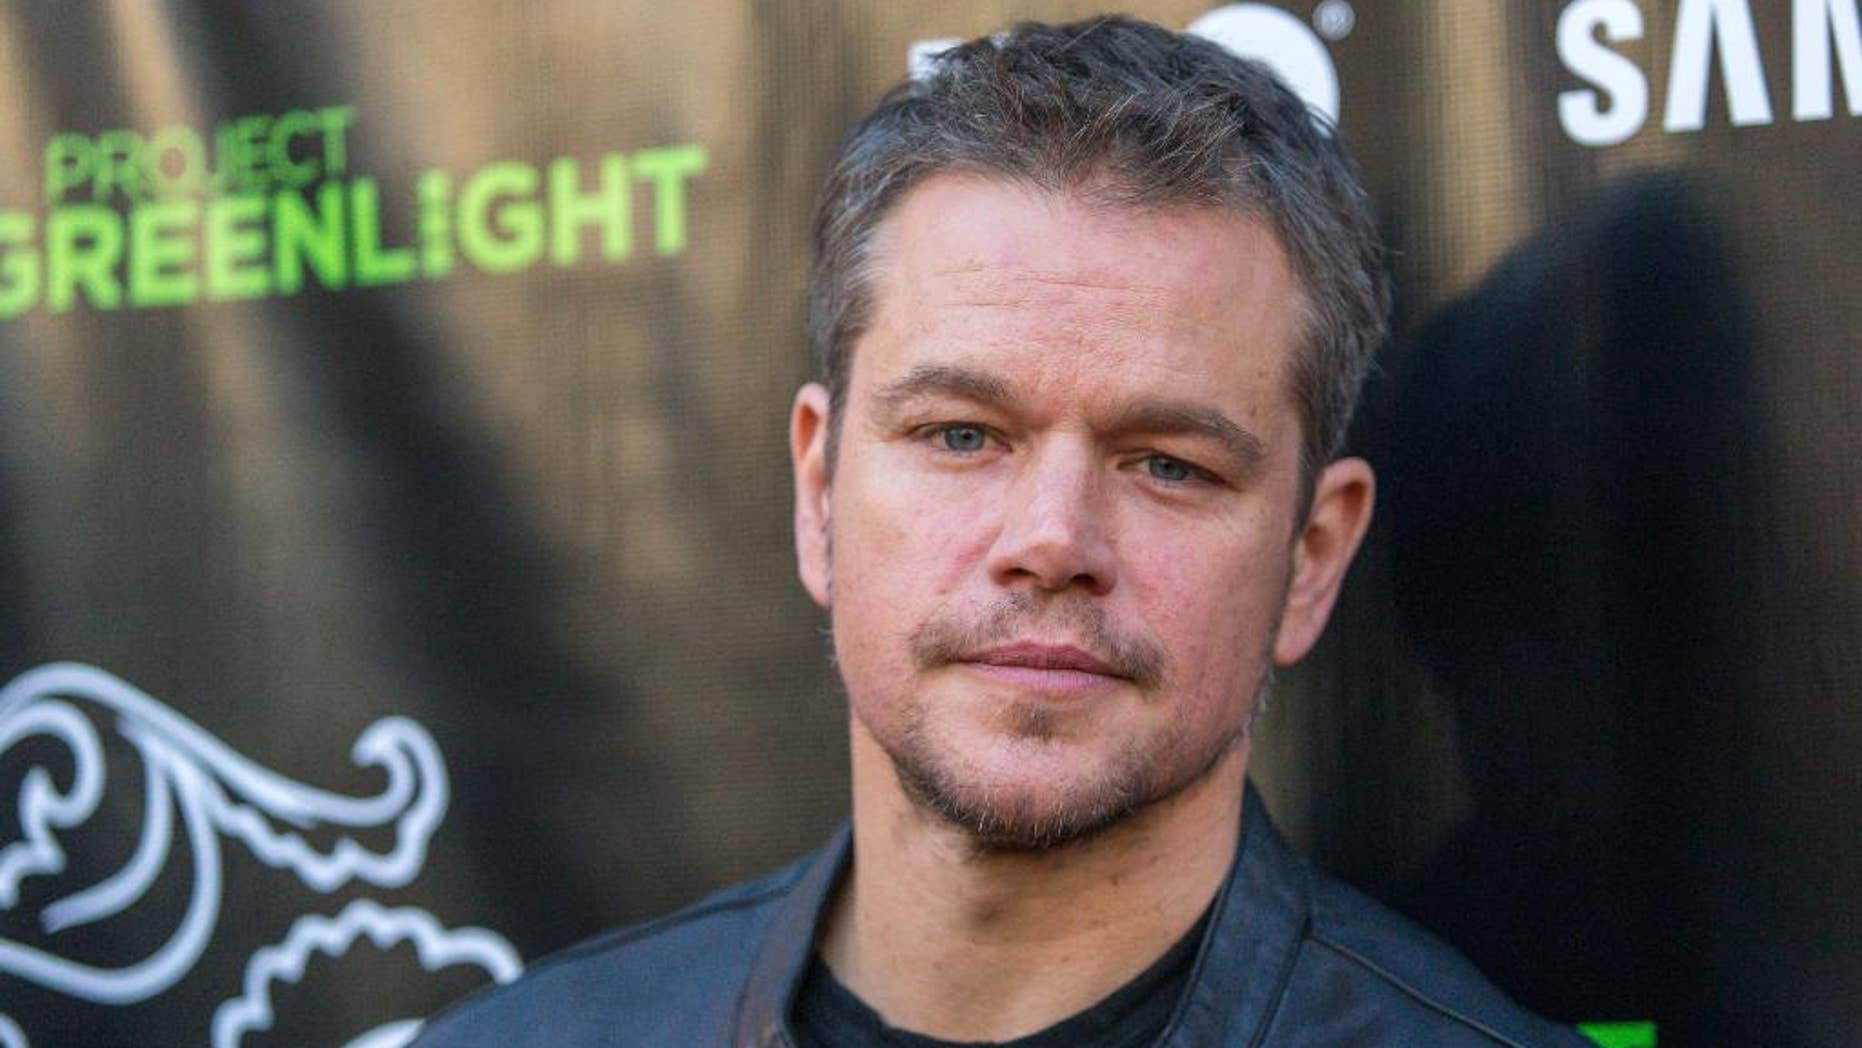 """FILE - In this Aug. 10, 2015 file photo, Matt Damon attends The Project Greenlight Season 4 premiere of """"The Leisure Class"""" in Los Angeles. Damon has apologized for comments regarding diversity in filmmaking that sparked widespread backlash, after a portion of a conversation from HBO's """"Project Greenlight"""" circulated online.  (Photo by Paul A. Hebert/Invision/AP, File)"""